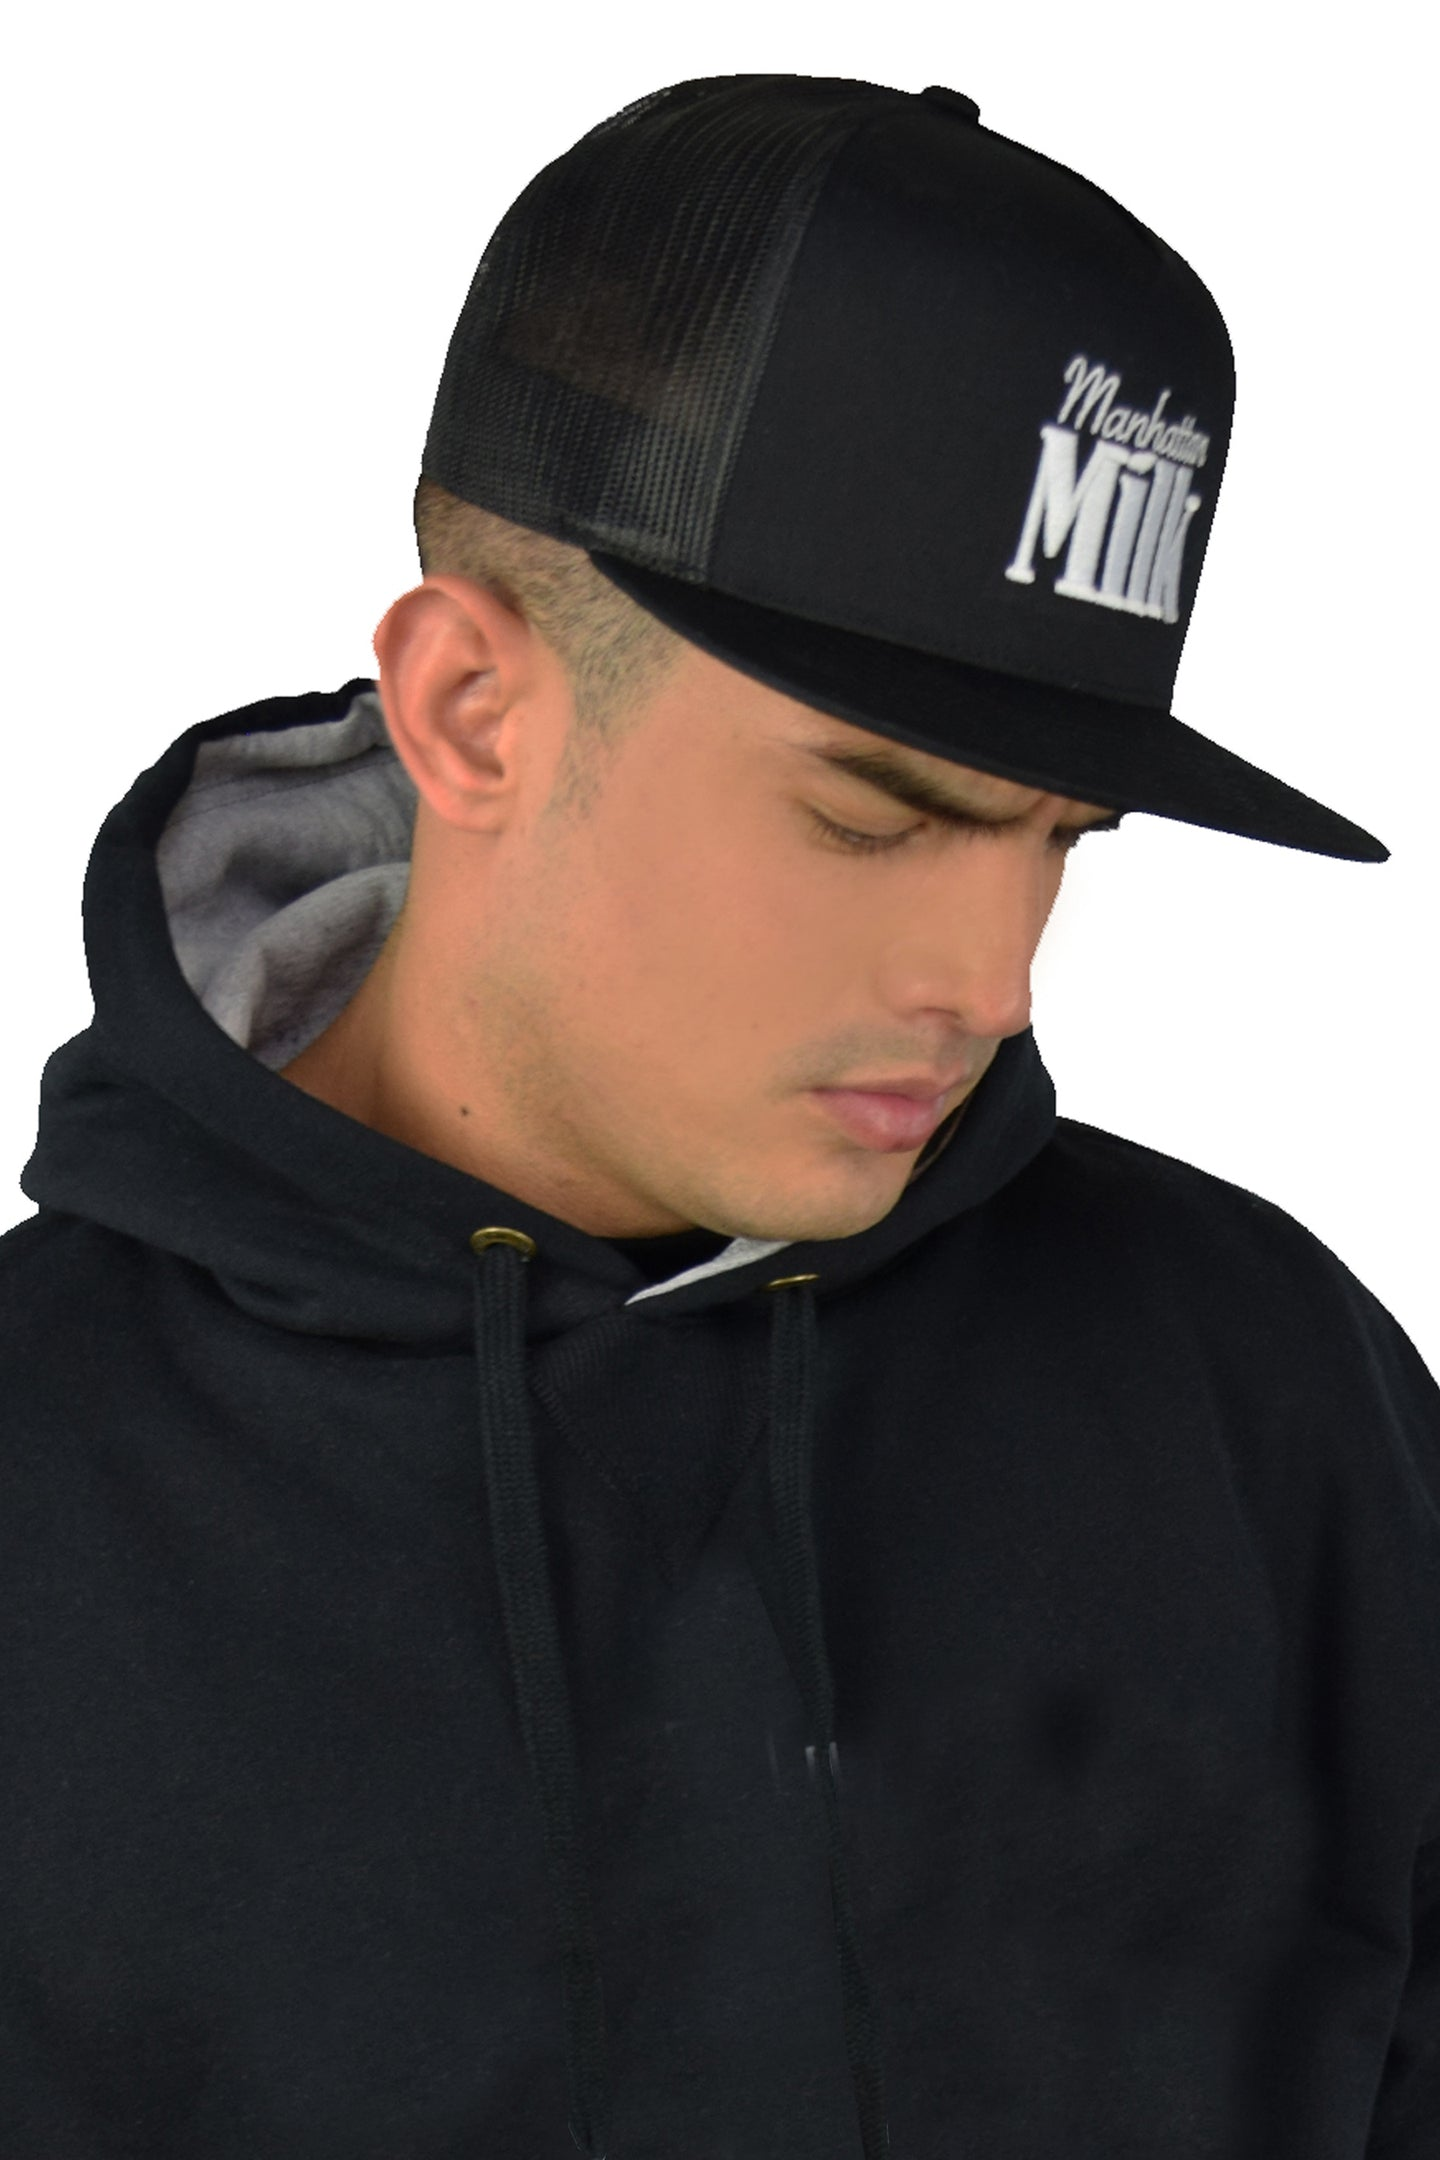 Manhattan Milk Straight Brim Trucker Hat